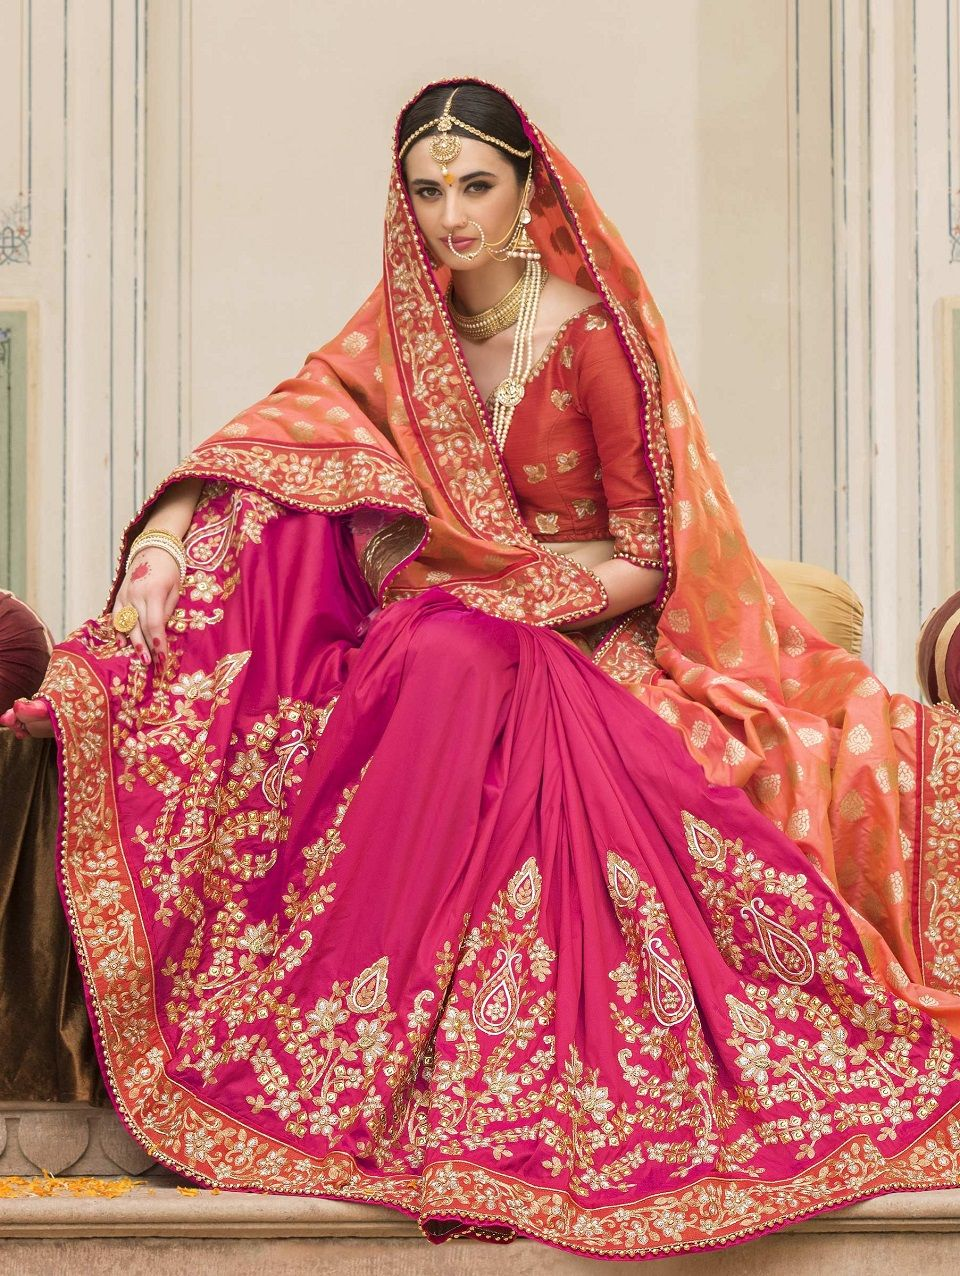 987d61a787 Indian Wedding Saree Latest Designs & Trends 2019-2029 Collection ...